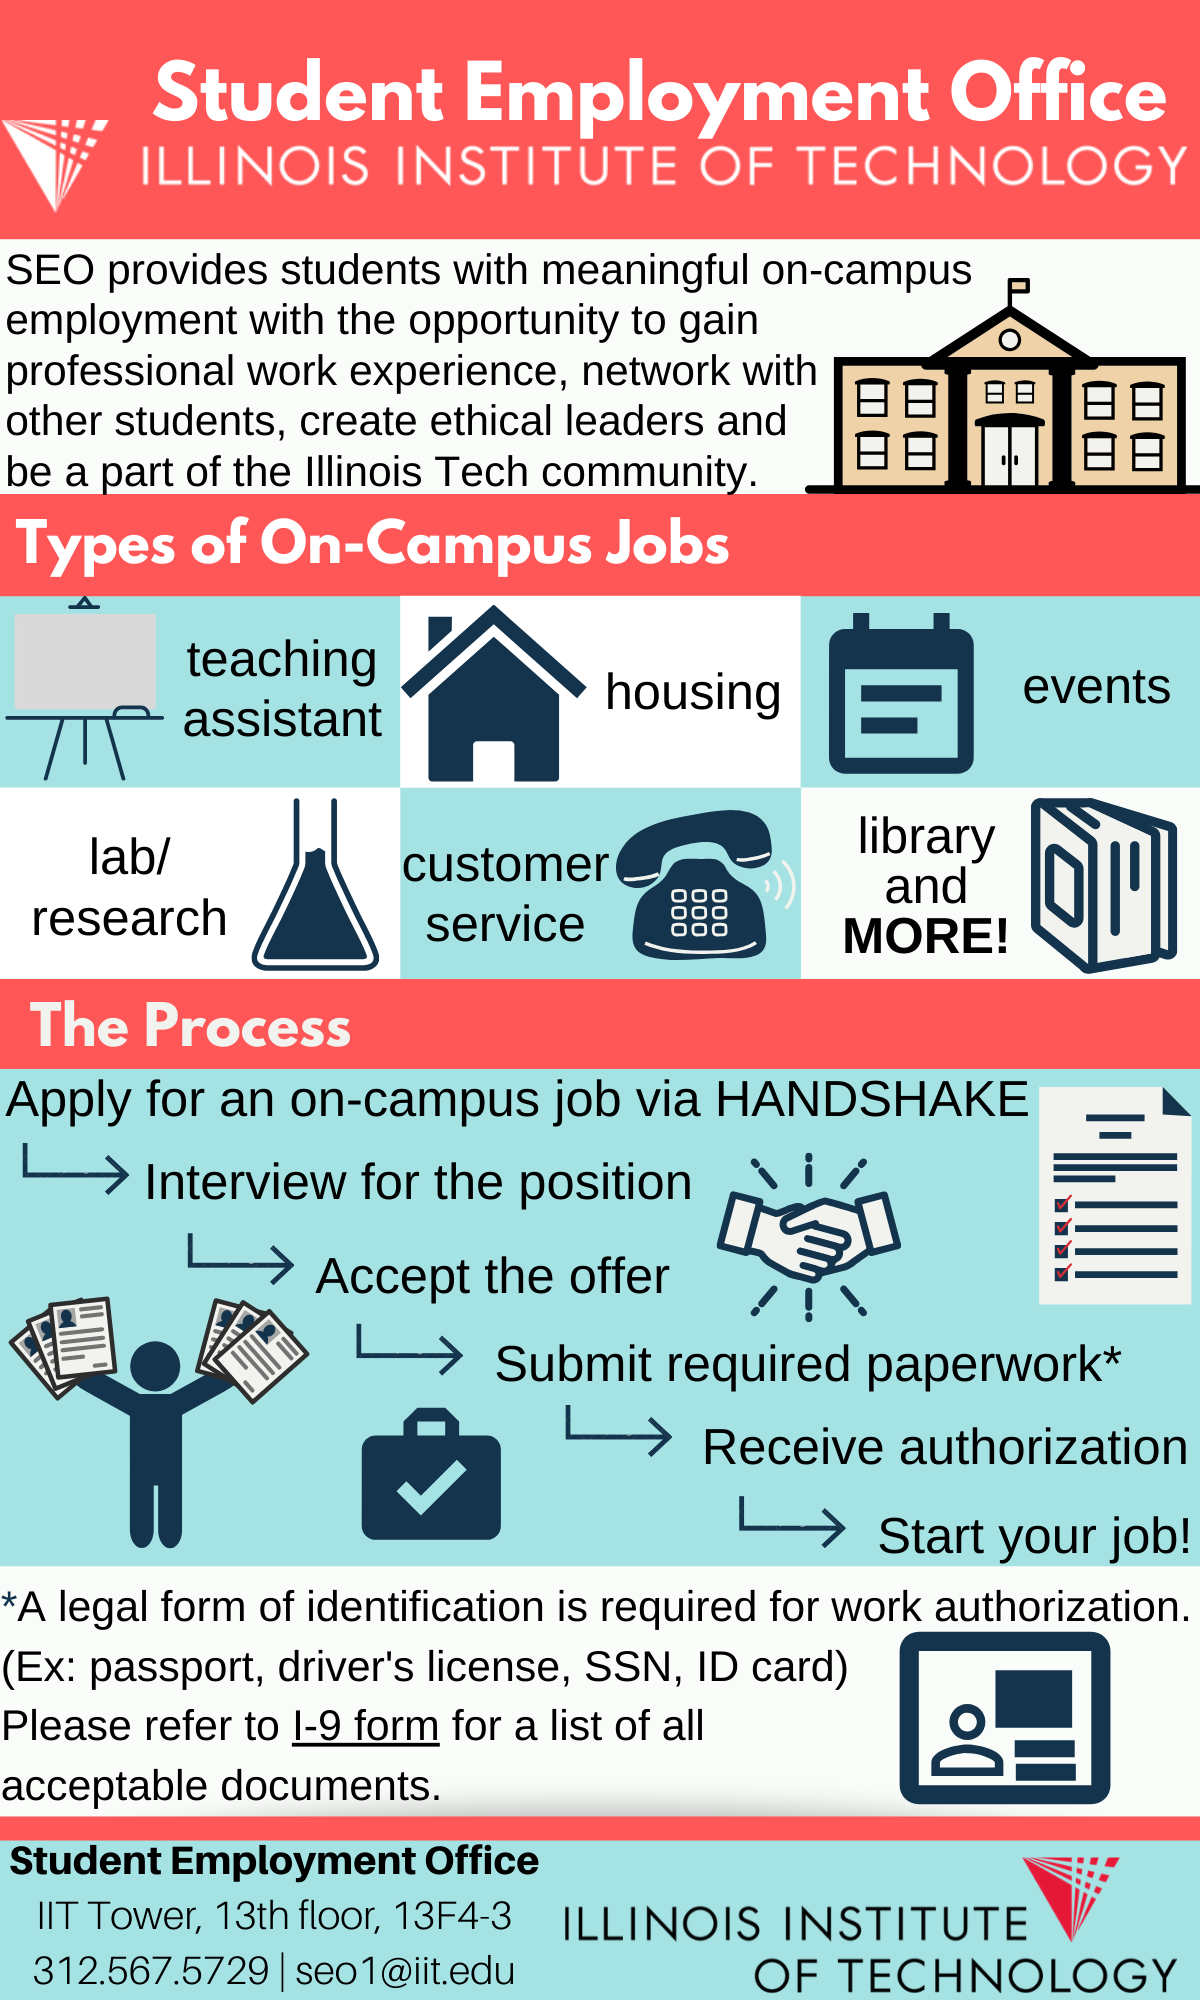 Student Employment Office Info graph